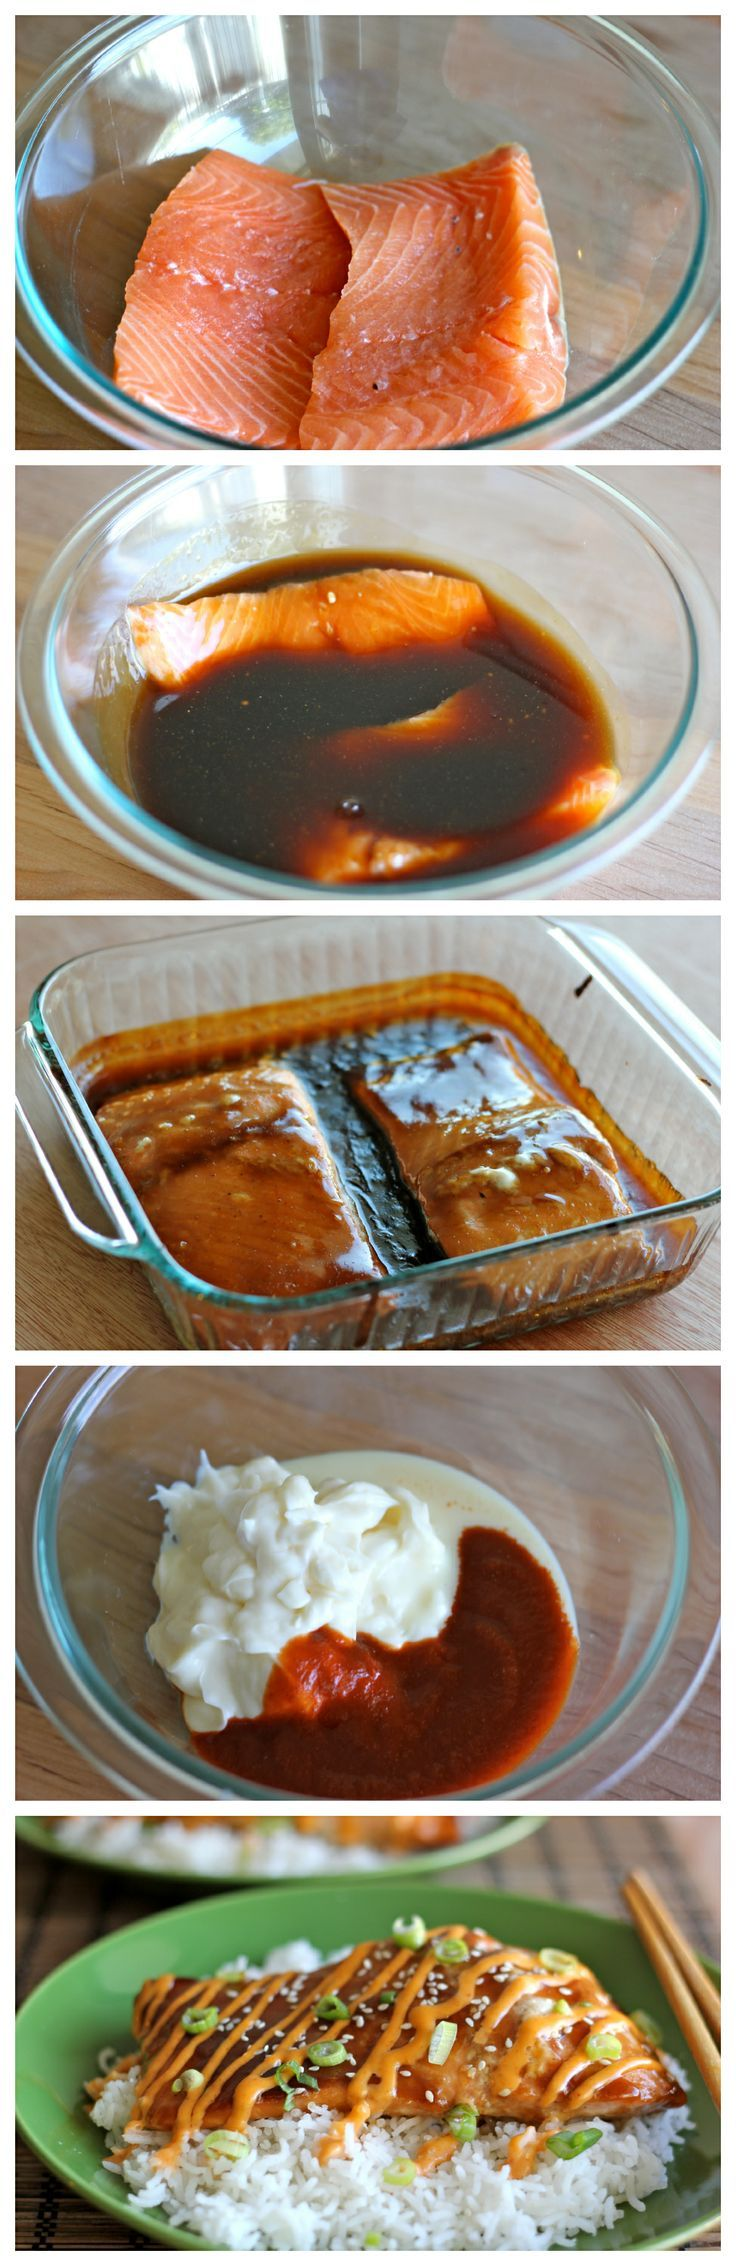 Teriyaki Salmon with Sriracha Cream Sauce - An easy dish with homemade teriyaki sauce and a sweet and spicy Sriracha cream sauce!